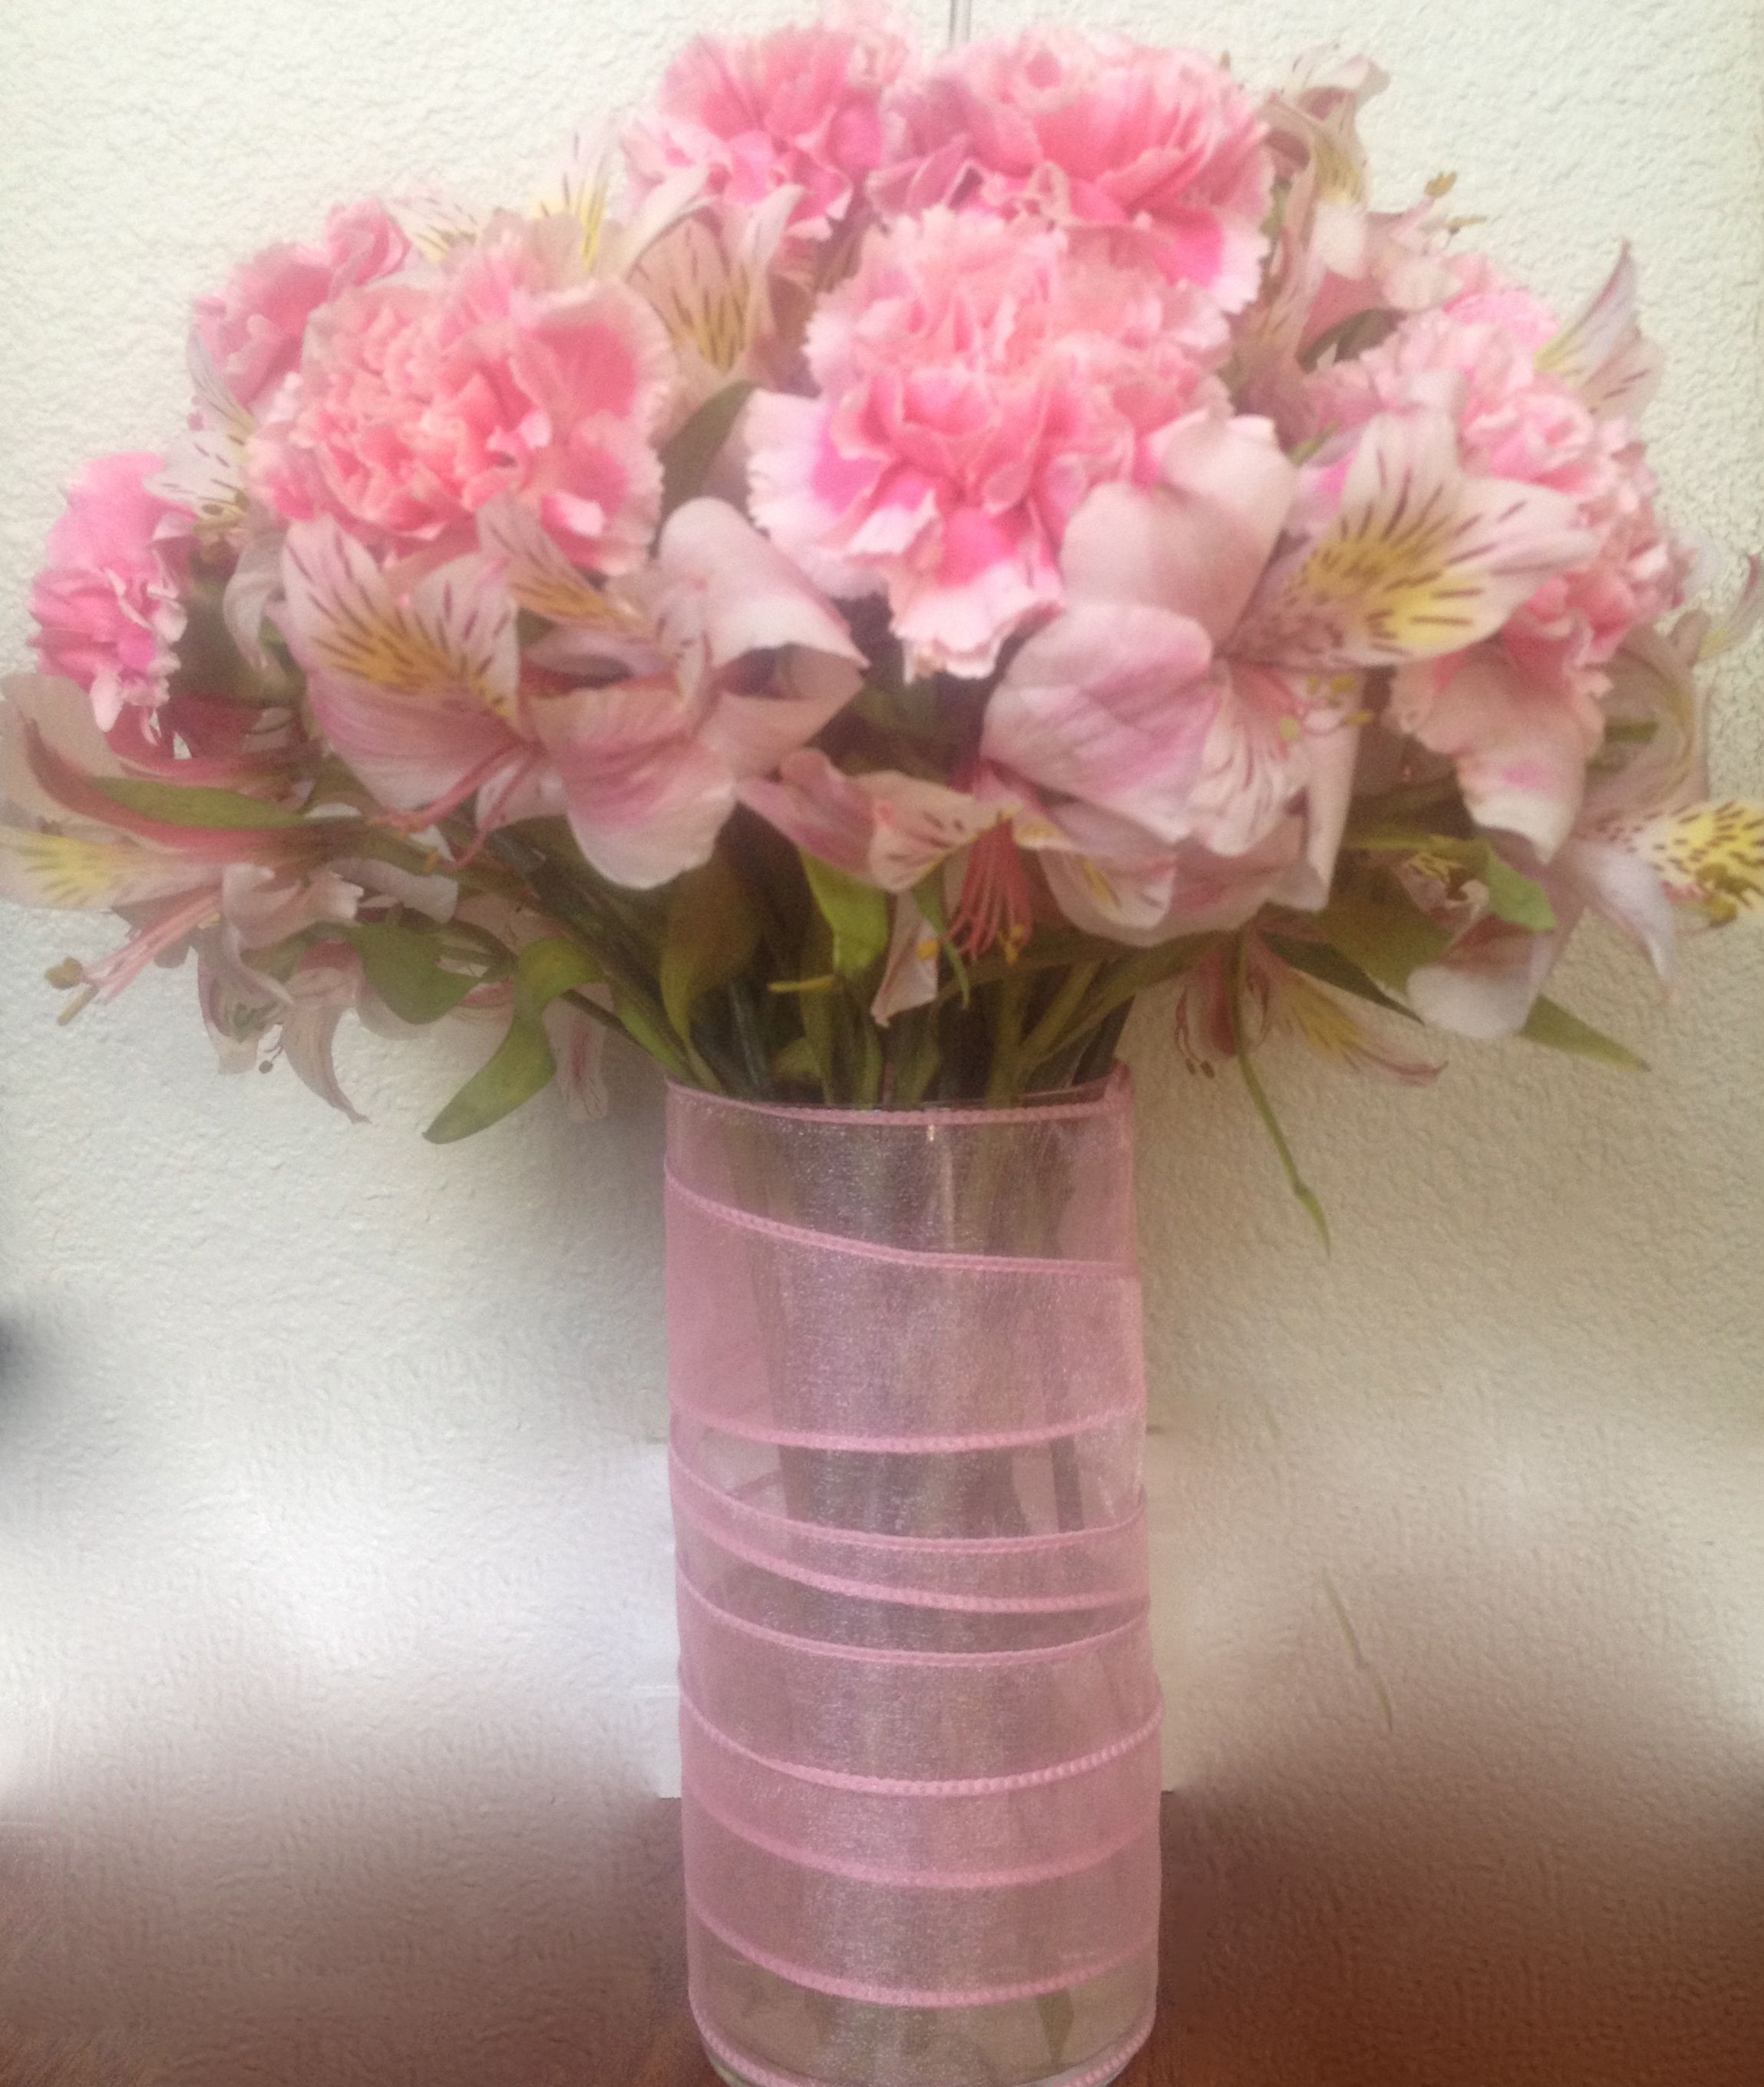 royal blue vases wholesale of extra tall vases awesome it s a girl pink carnations alstroemeria in extra tall vases awesome it s a girl pink carnations alstroemeria in a glass vase